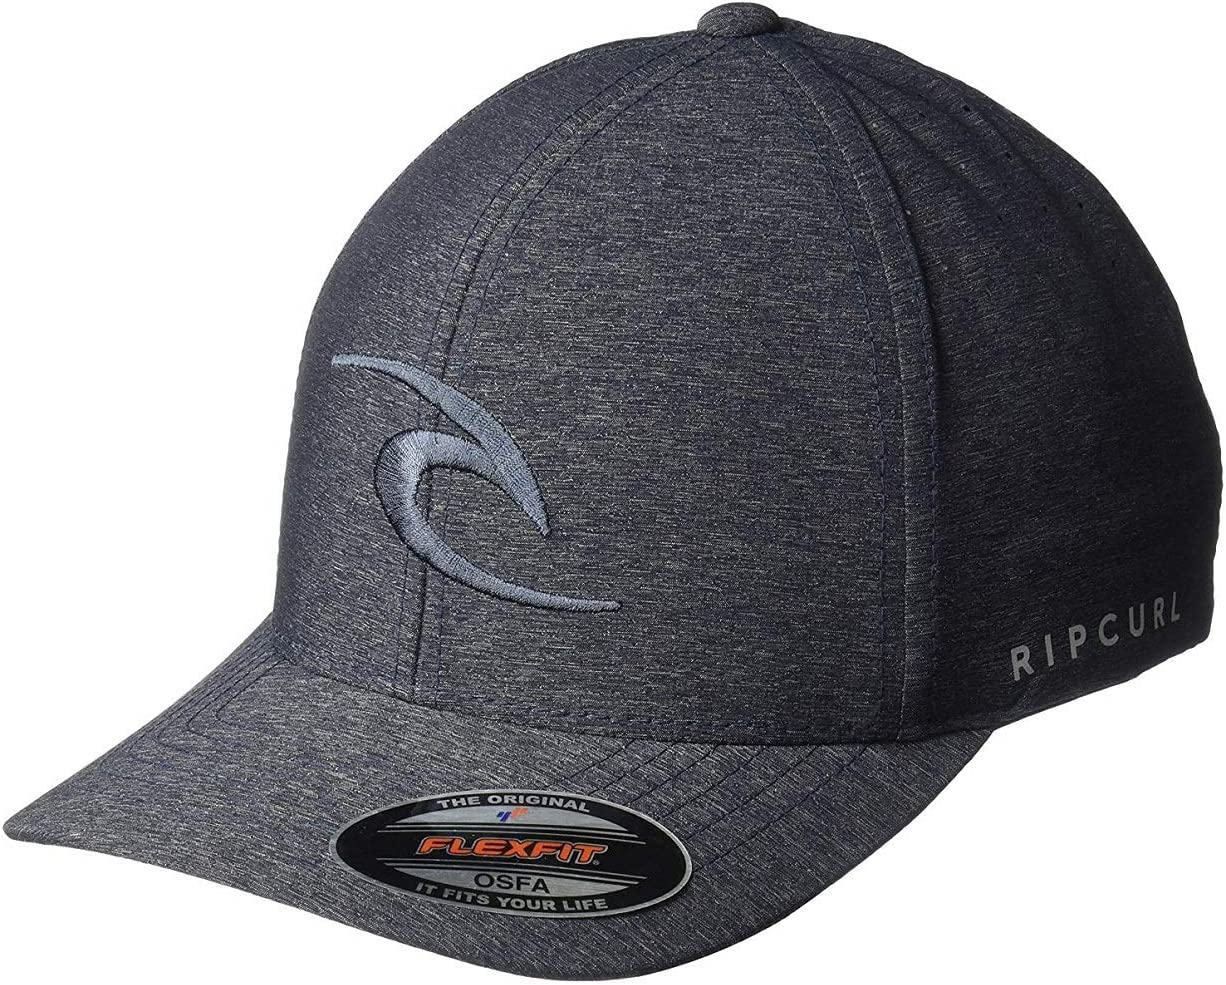 RIP CURL Gorra Phase Icon Curve Black CCAOA1 0090: Amazon.es ...